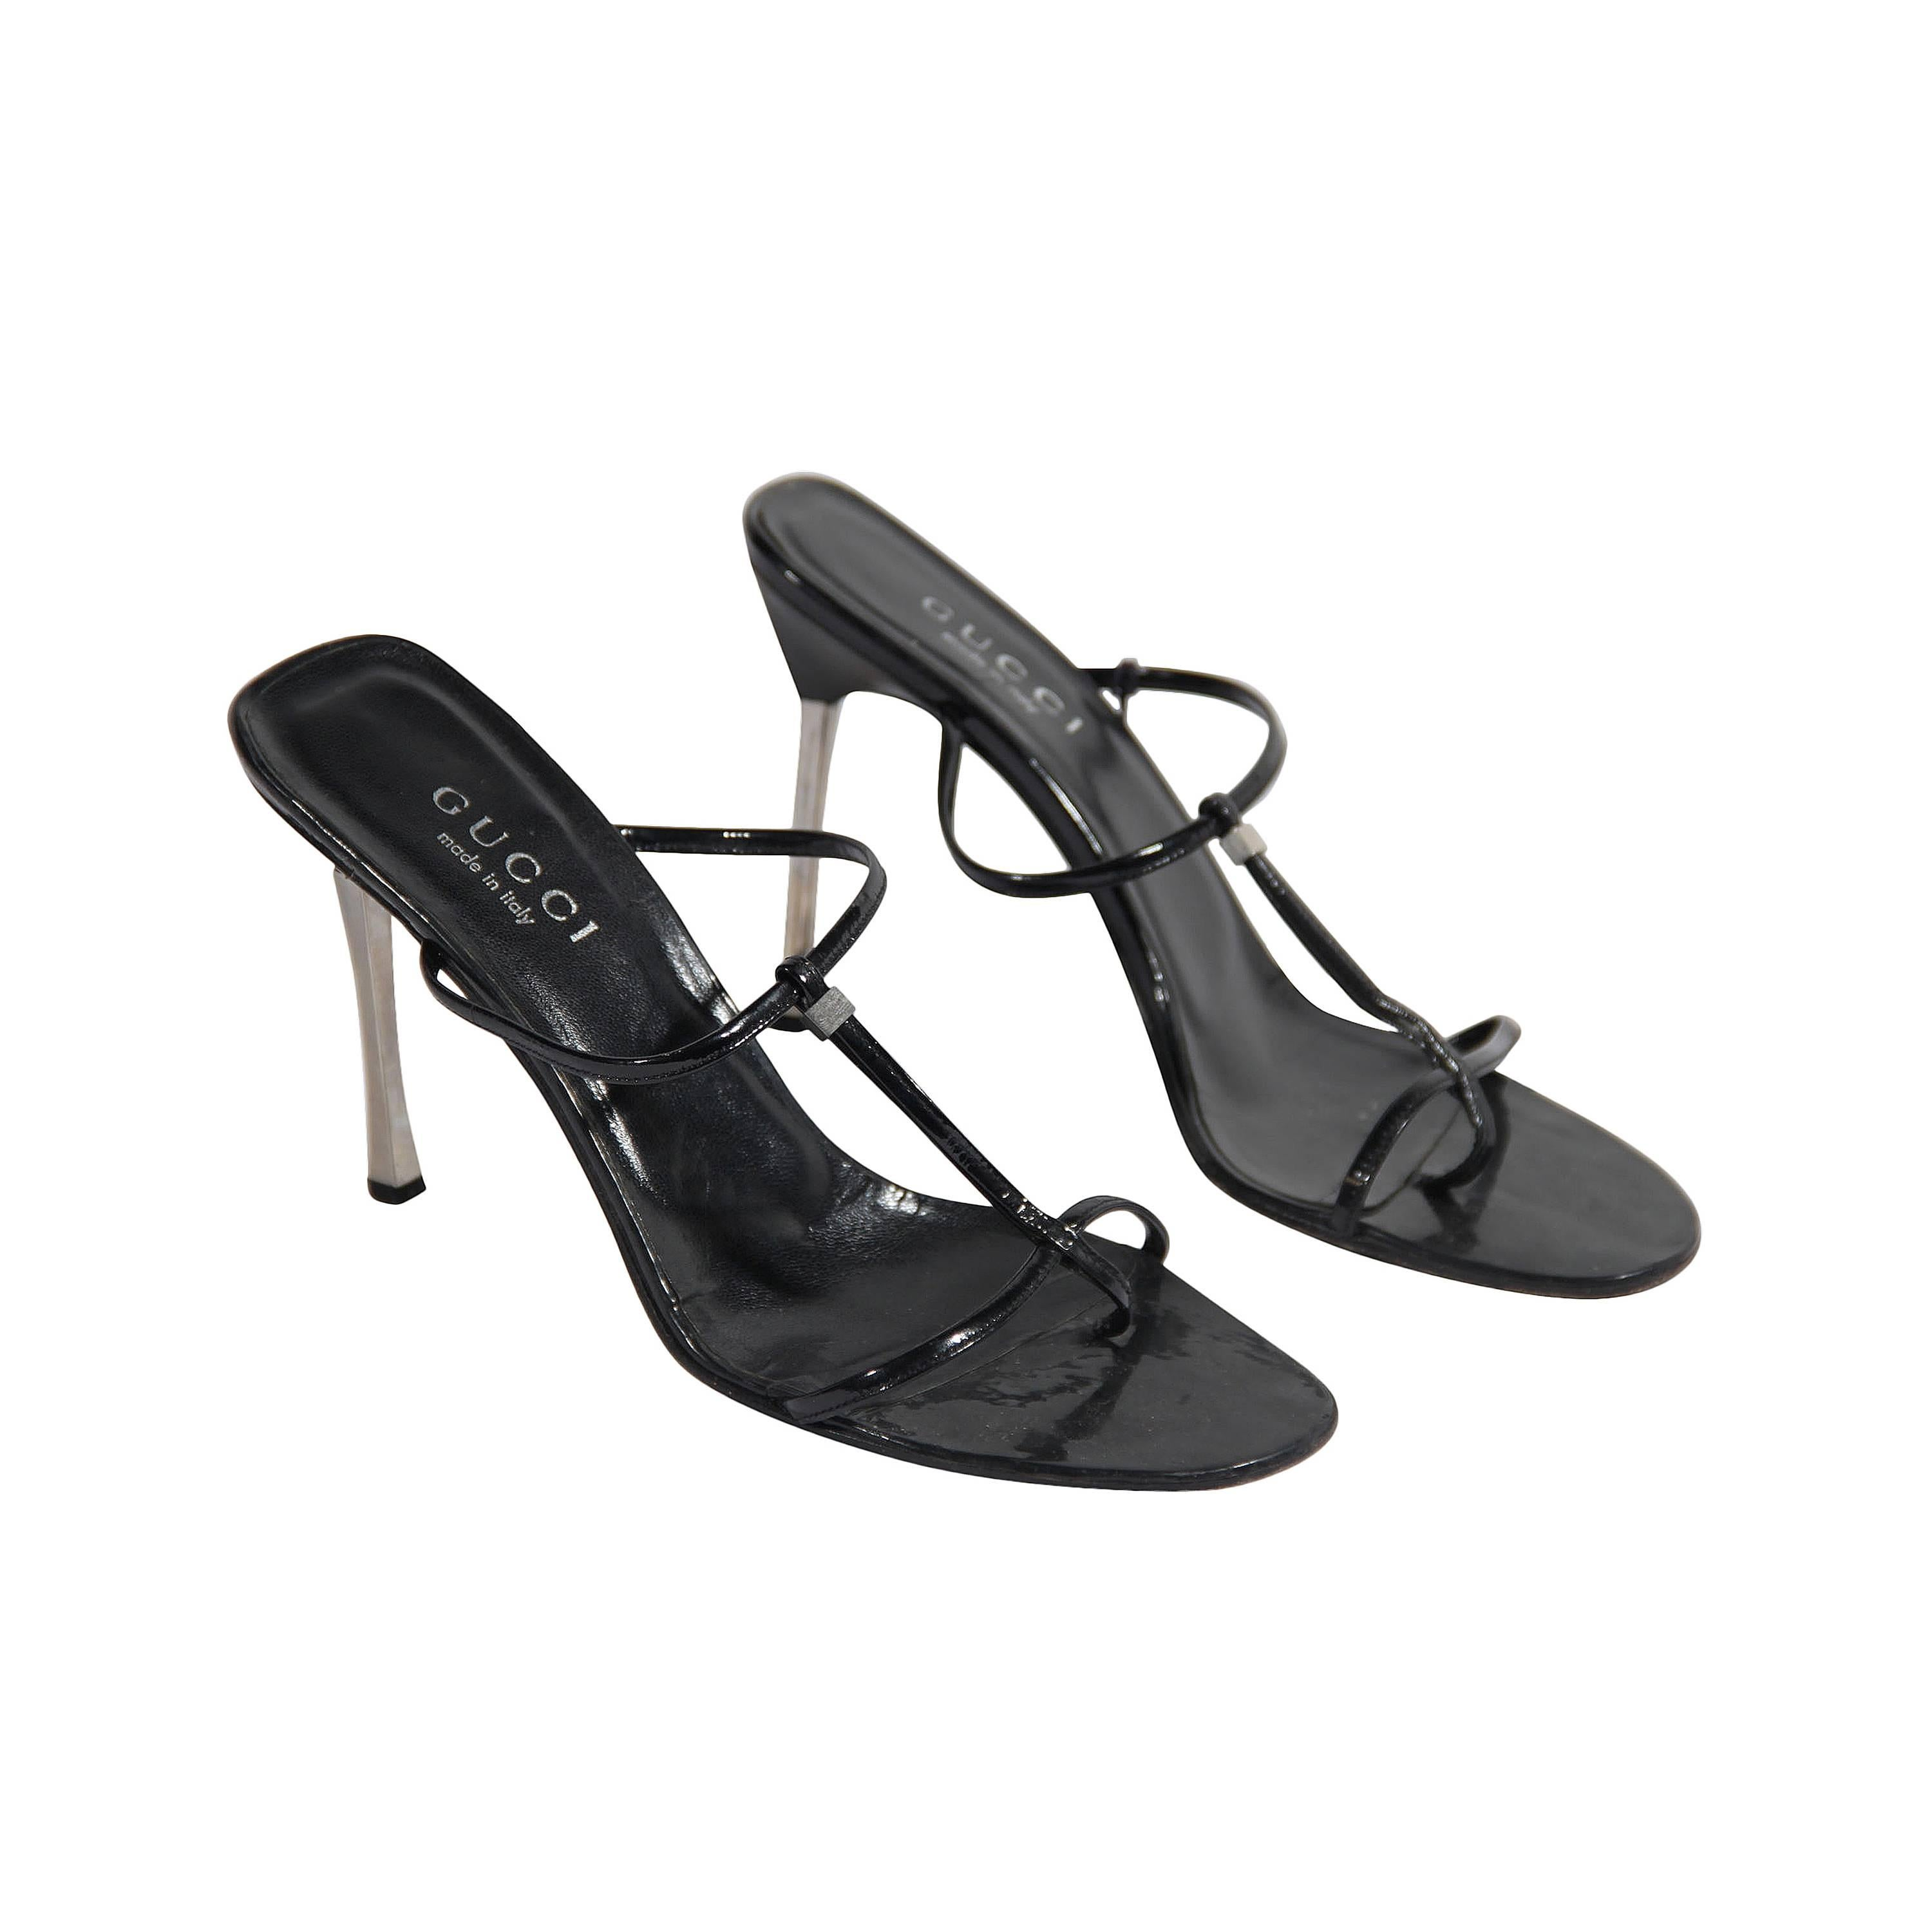 def55b450 Gucci Black Leather Heeled Sandals Shoes with Stiletto Heels at 1stdibs